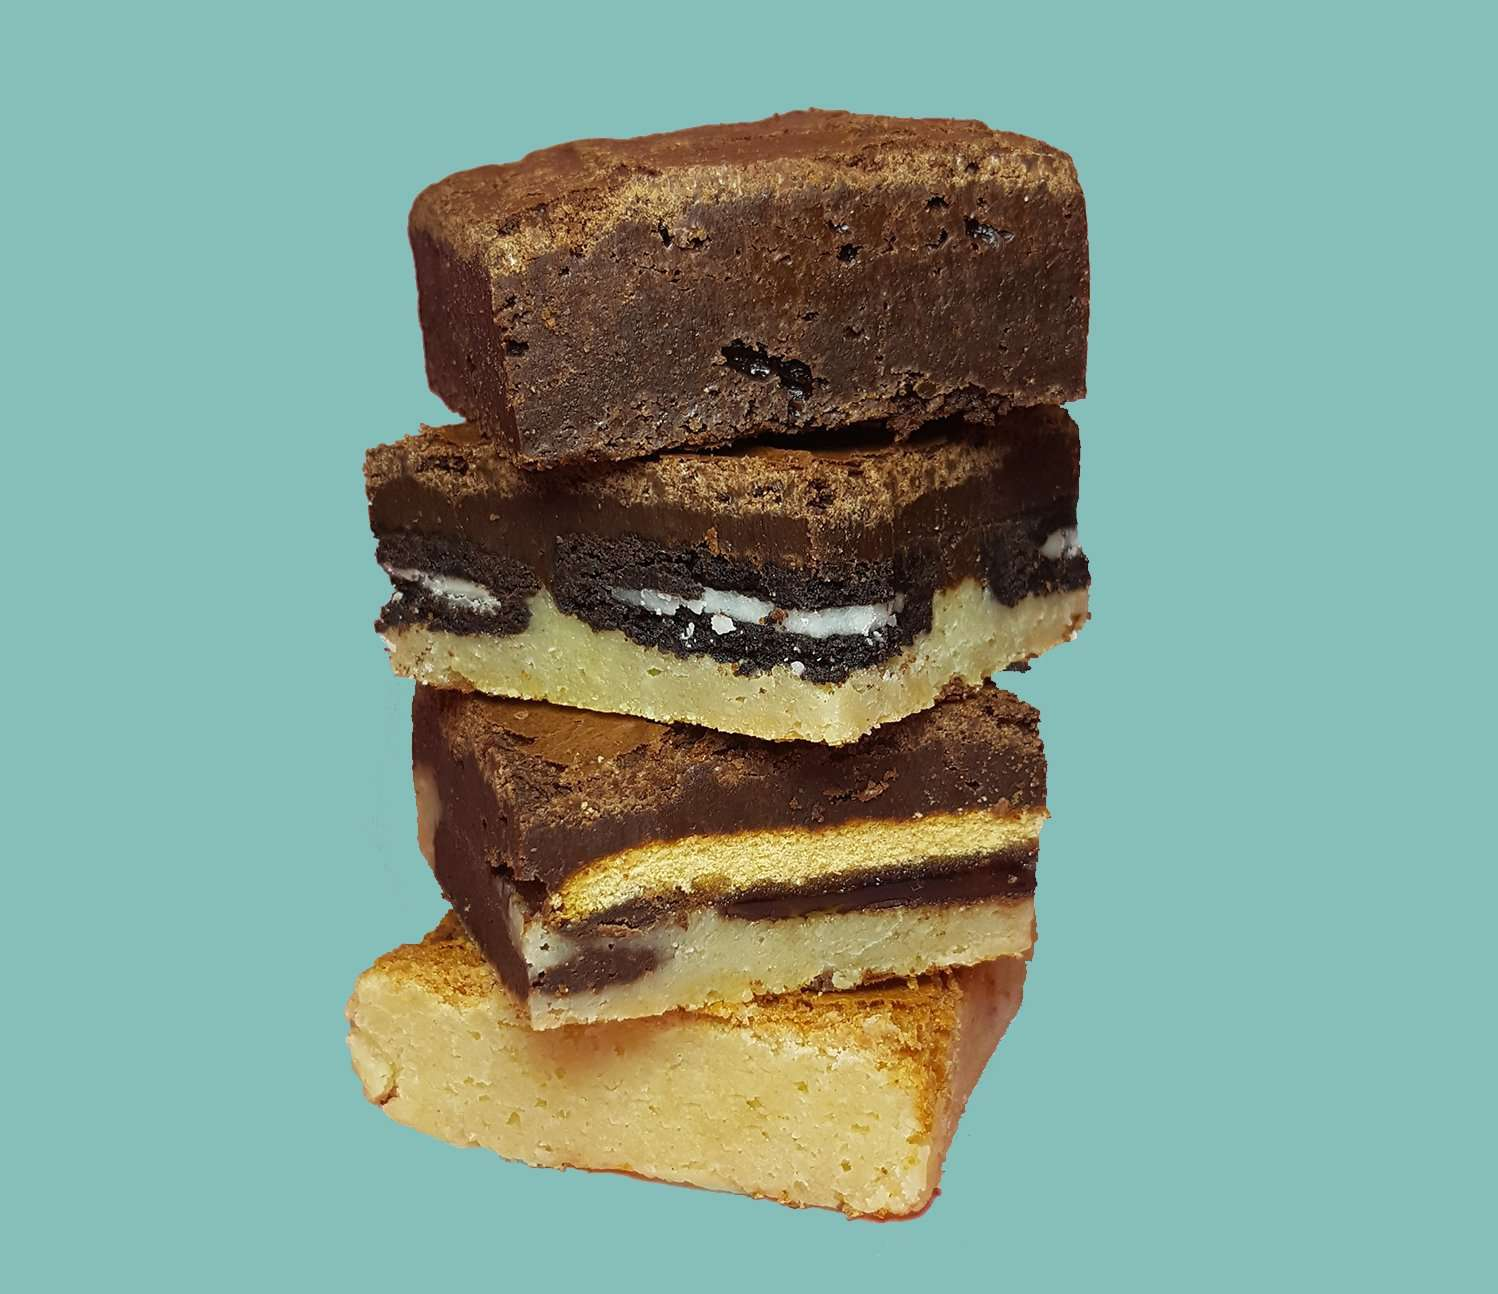 Dark Chocolate Brownies - Mixed Chocolate Brownies - Pre-paid 12 Month Subscription